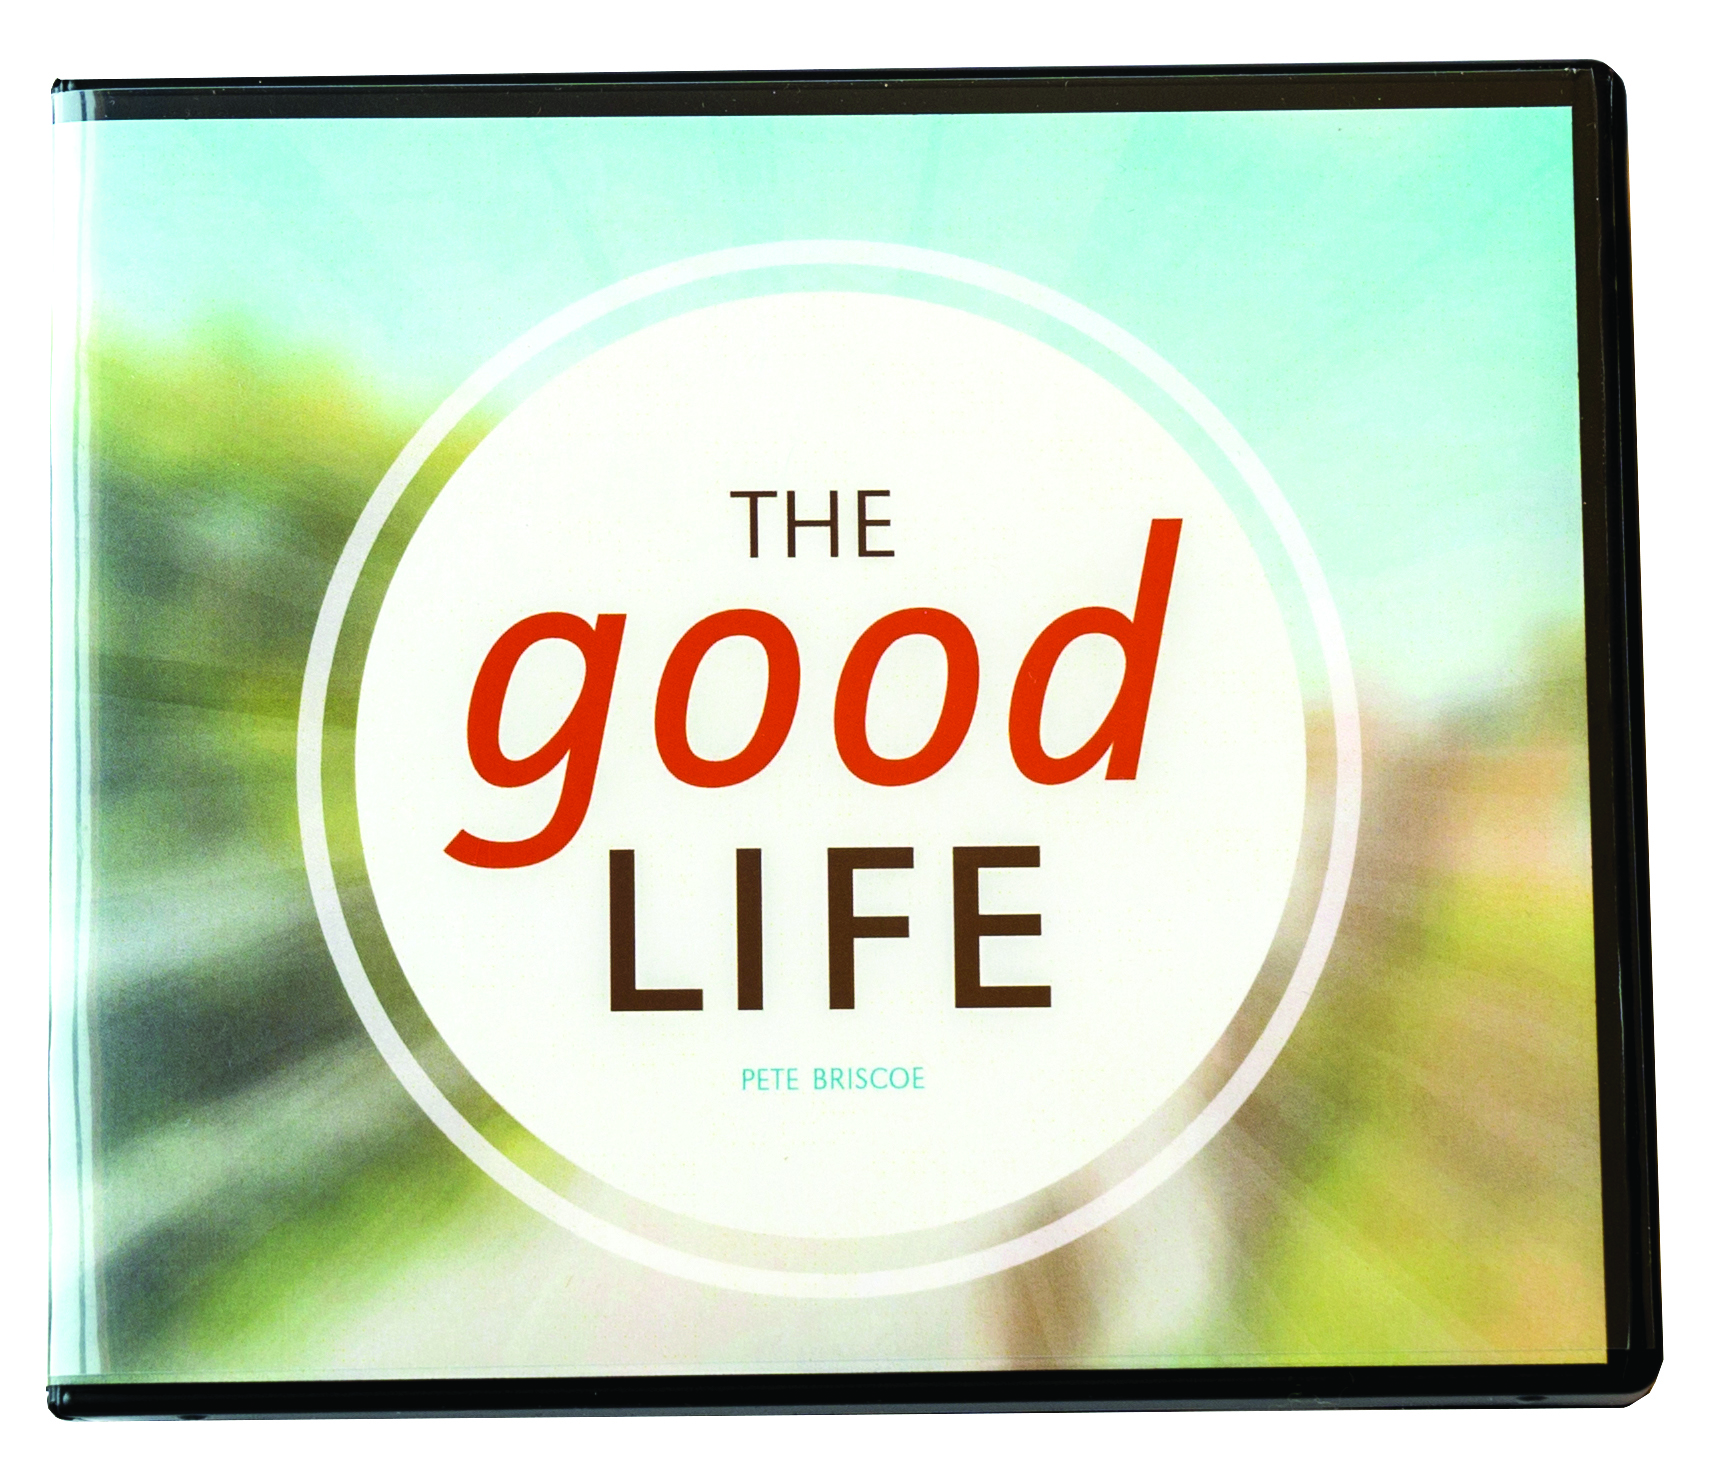 Experience more of the Good Life God has for you!